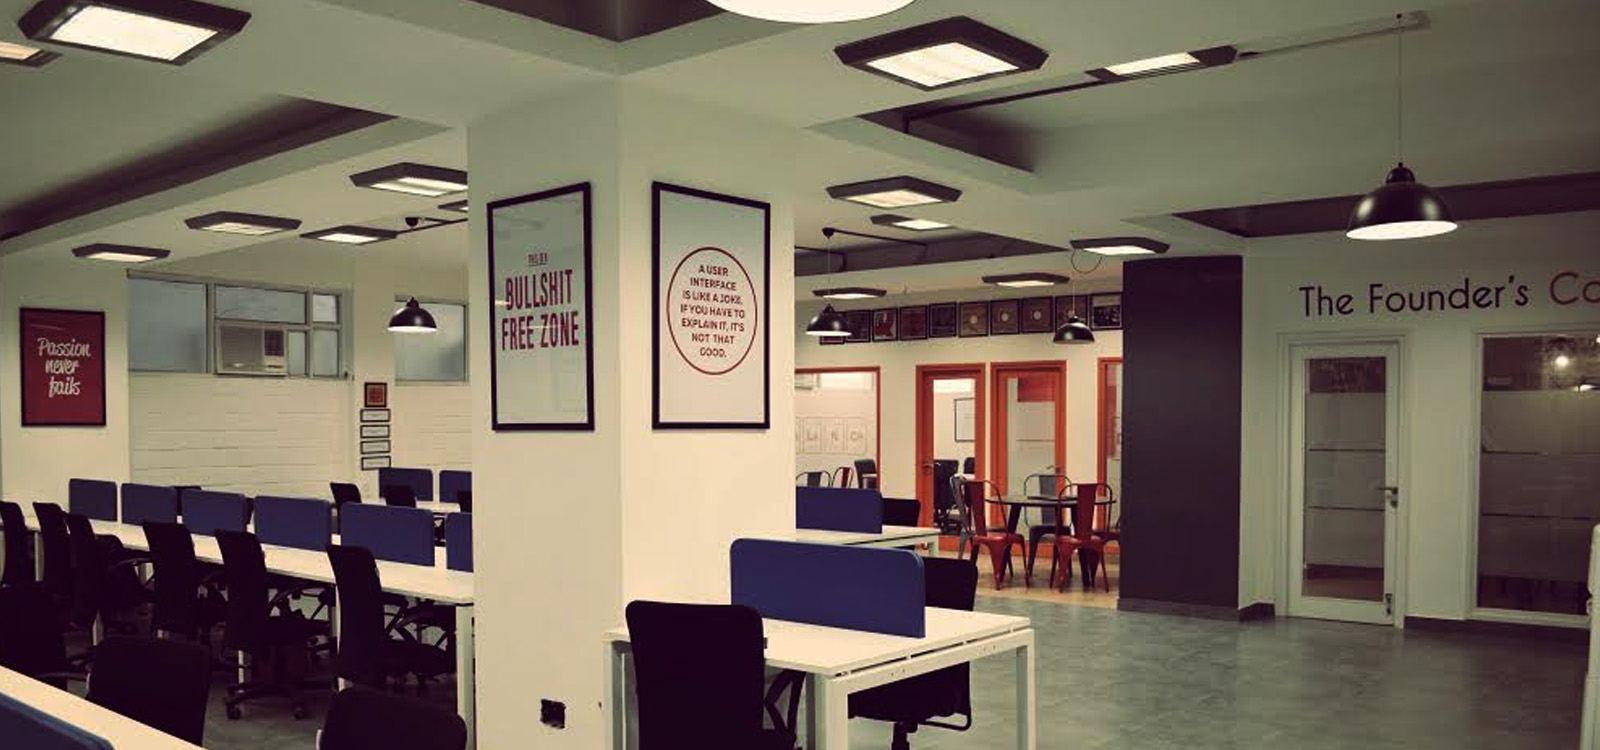 the founders cafe - coworking spaces in new delhi